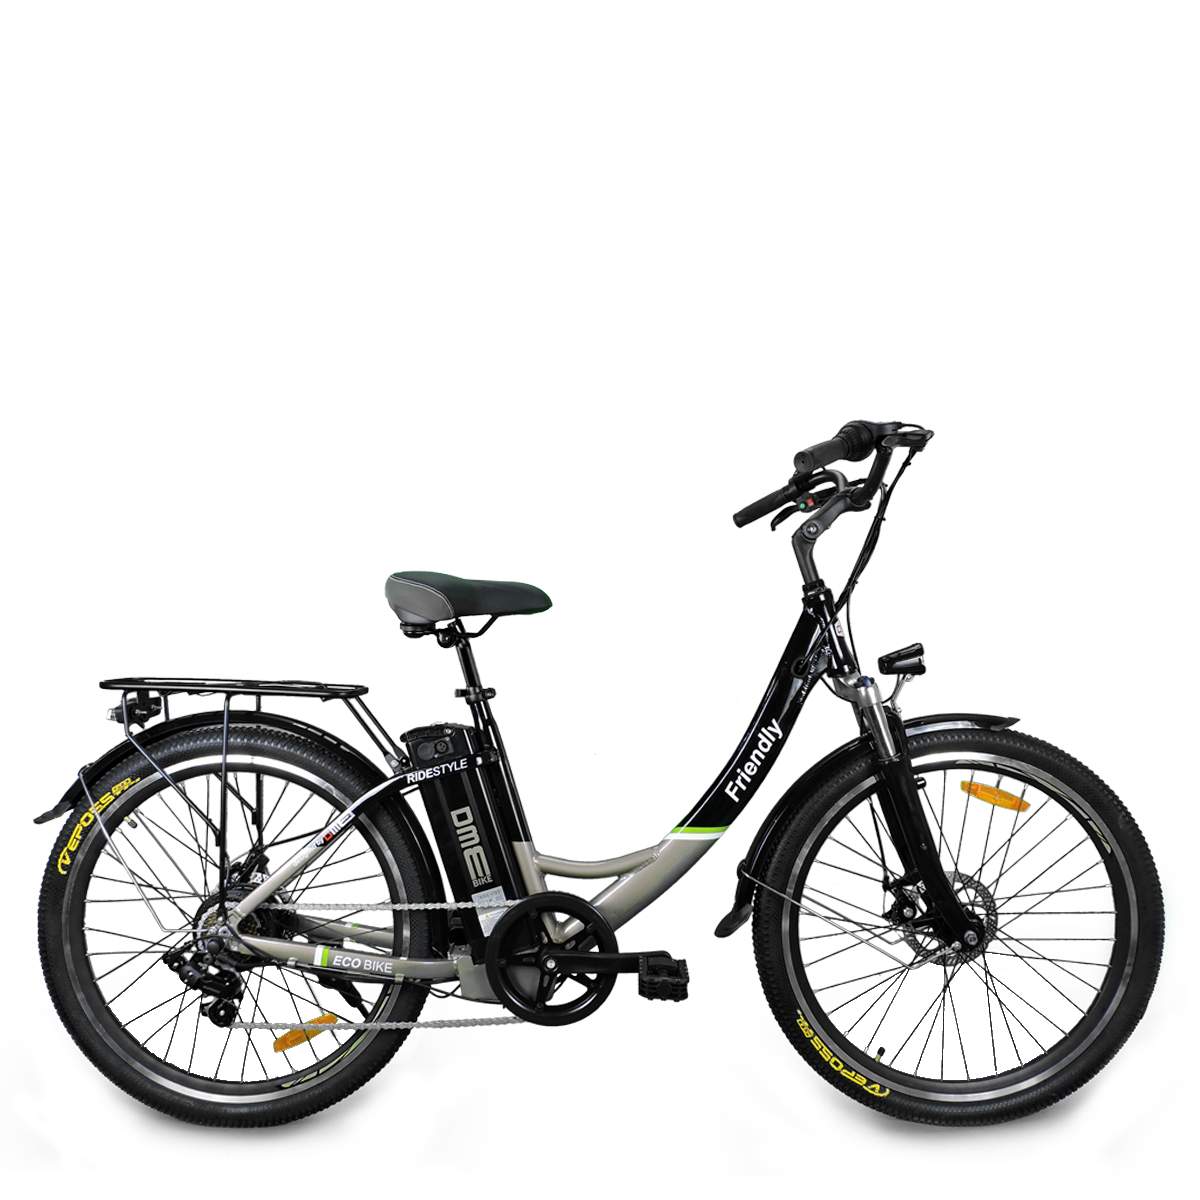 city bike elettrica dme